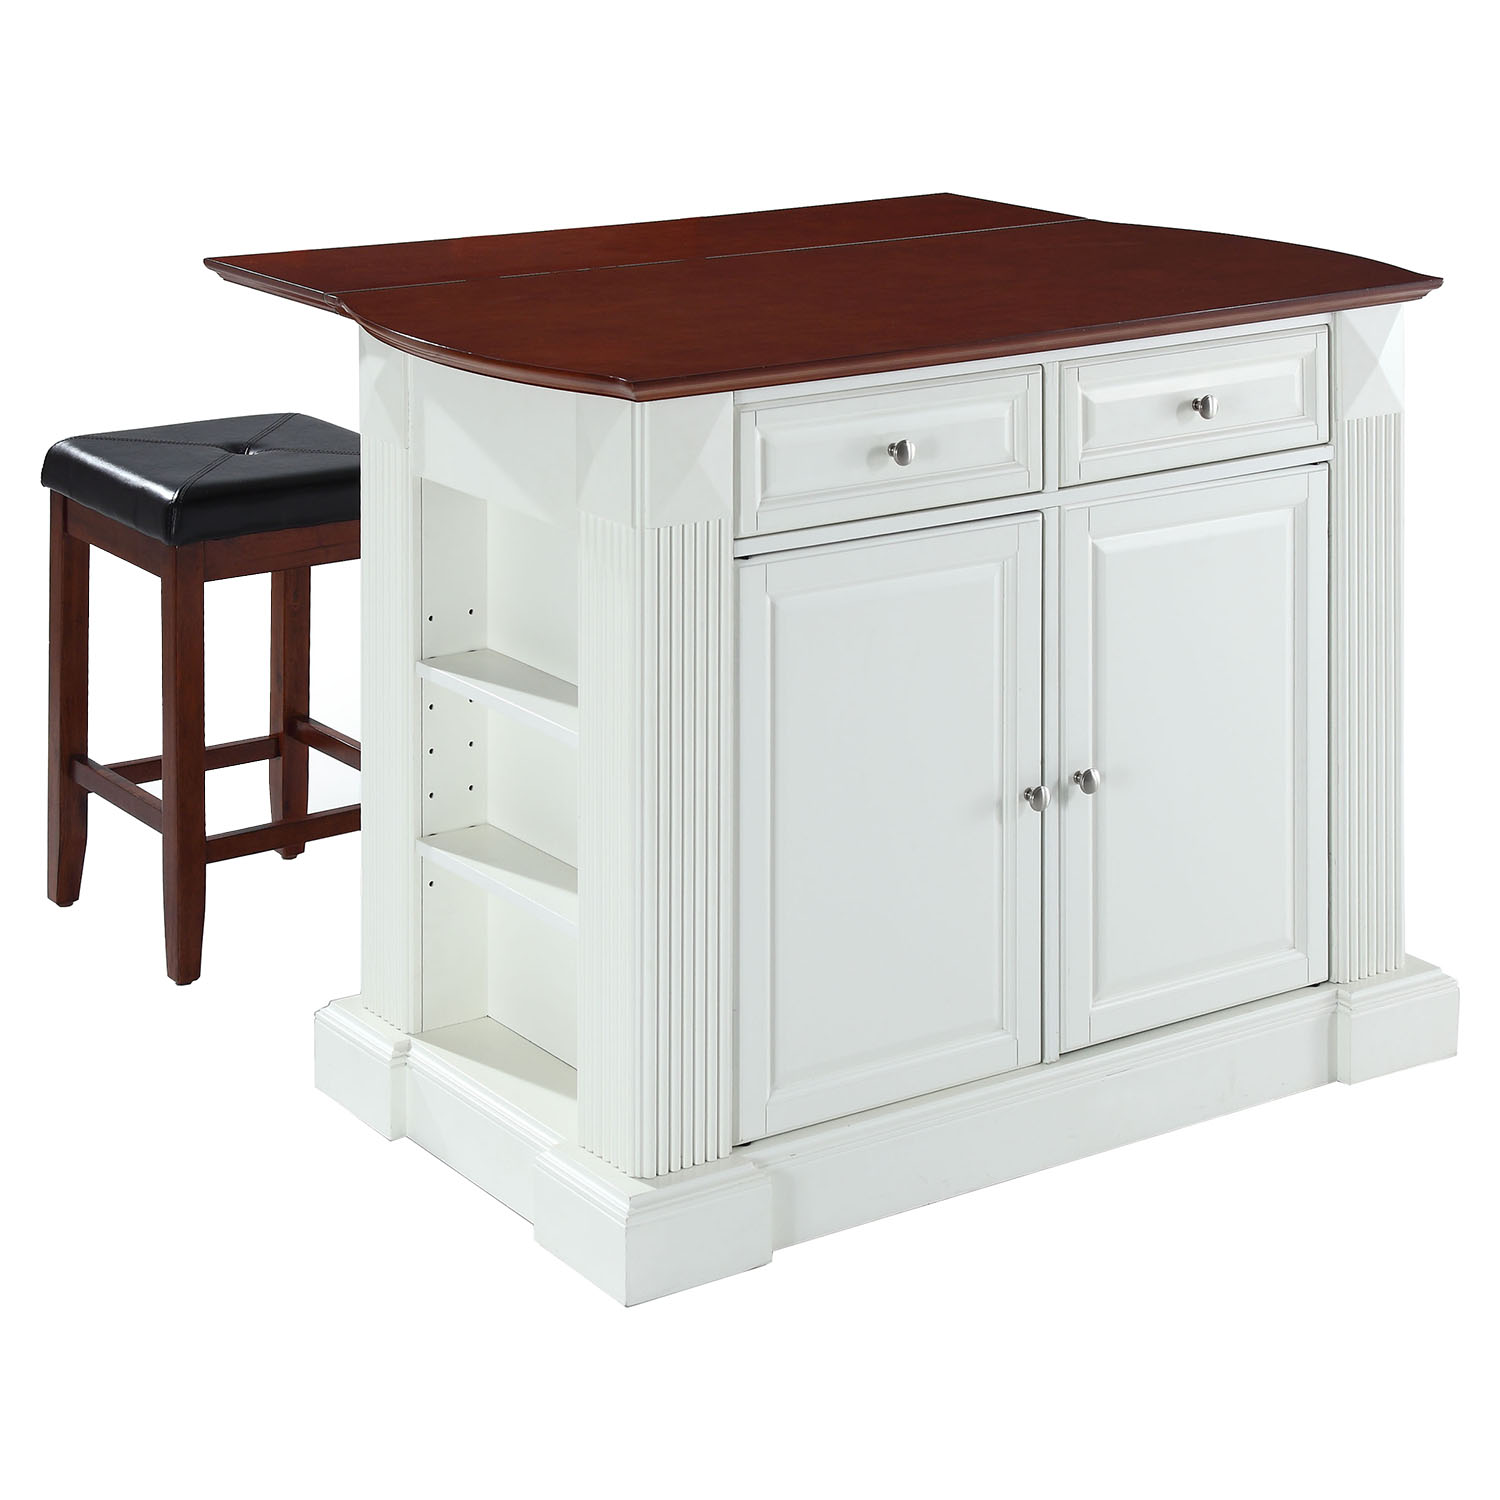 Drop Leaf Kitchen Island In White With 24 Cherry Square Seat Stools Dcg Stores